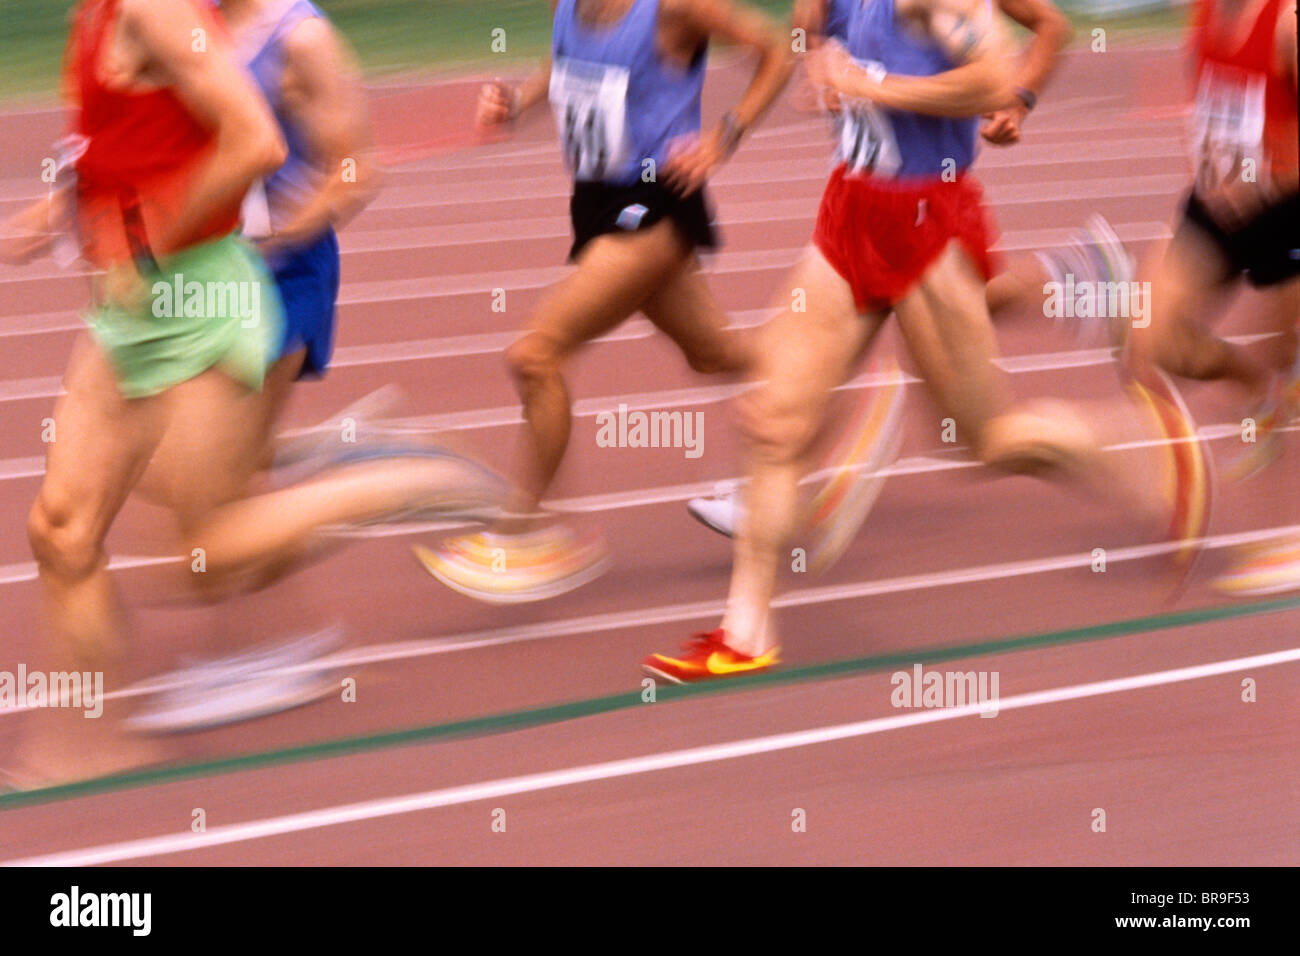 BLURRED MOTION FEET AND LEGS OF MEN RUNNING A RACE ON A TRACK - Stock Image